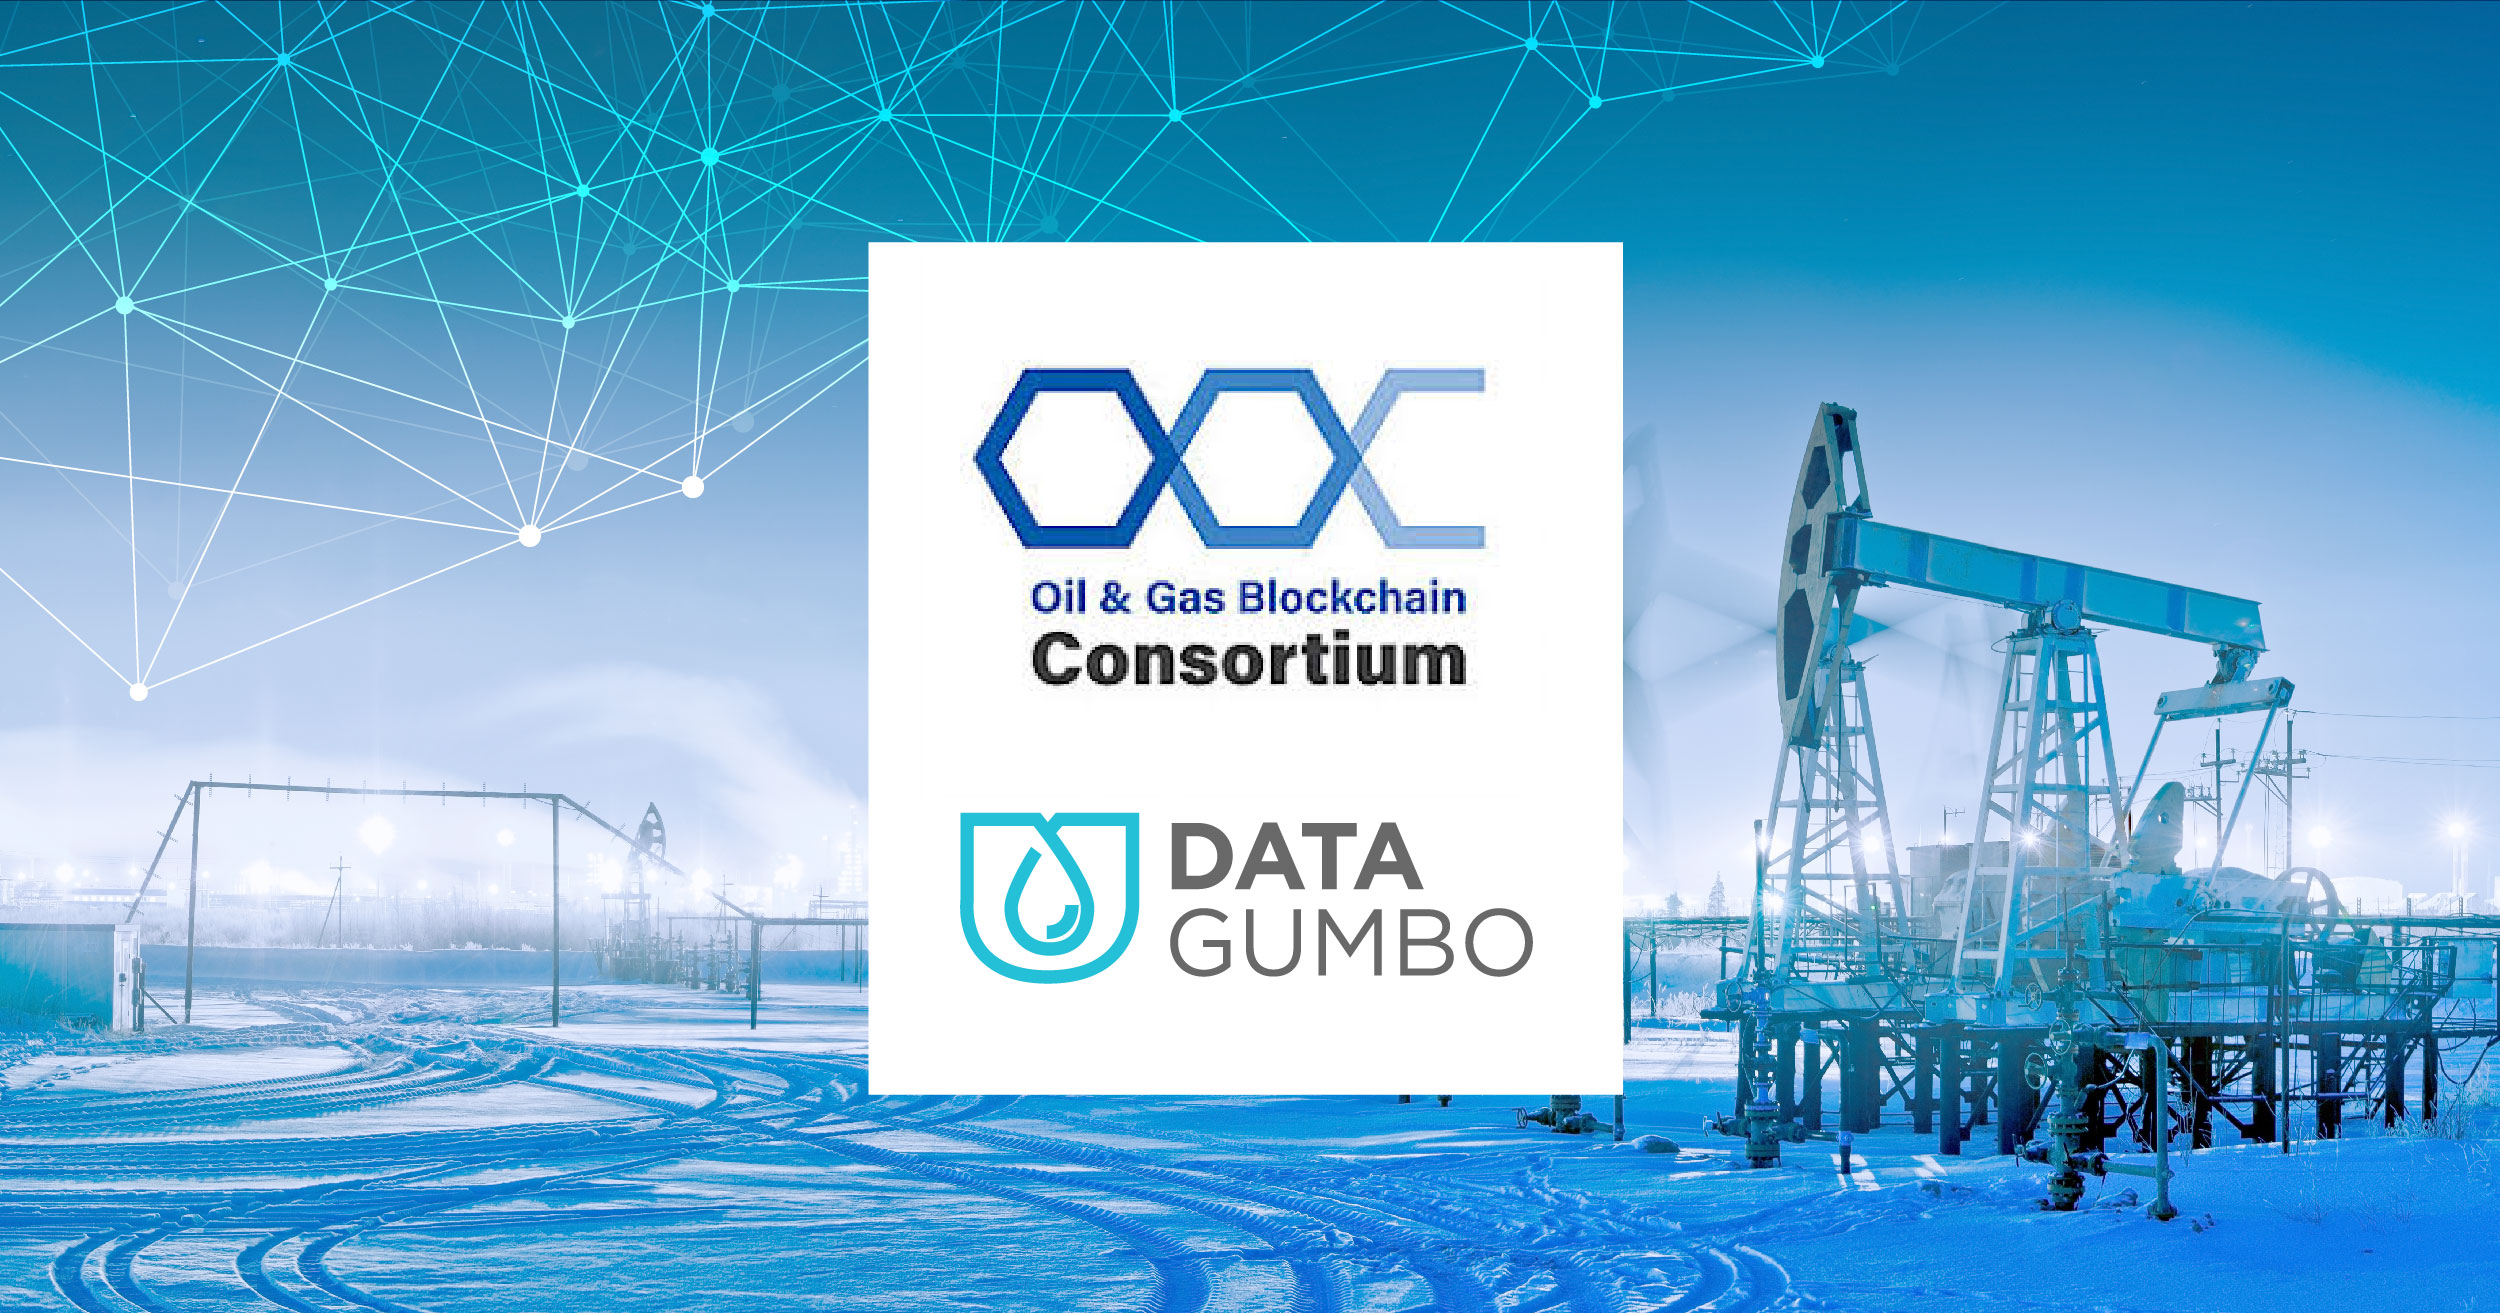 Data Gumbo to conduct a blockchain pilot in water haulage